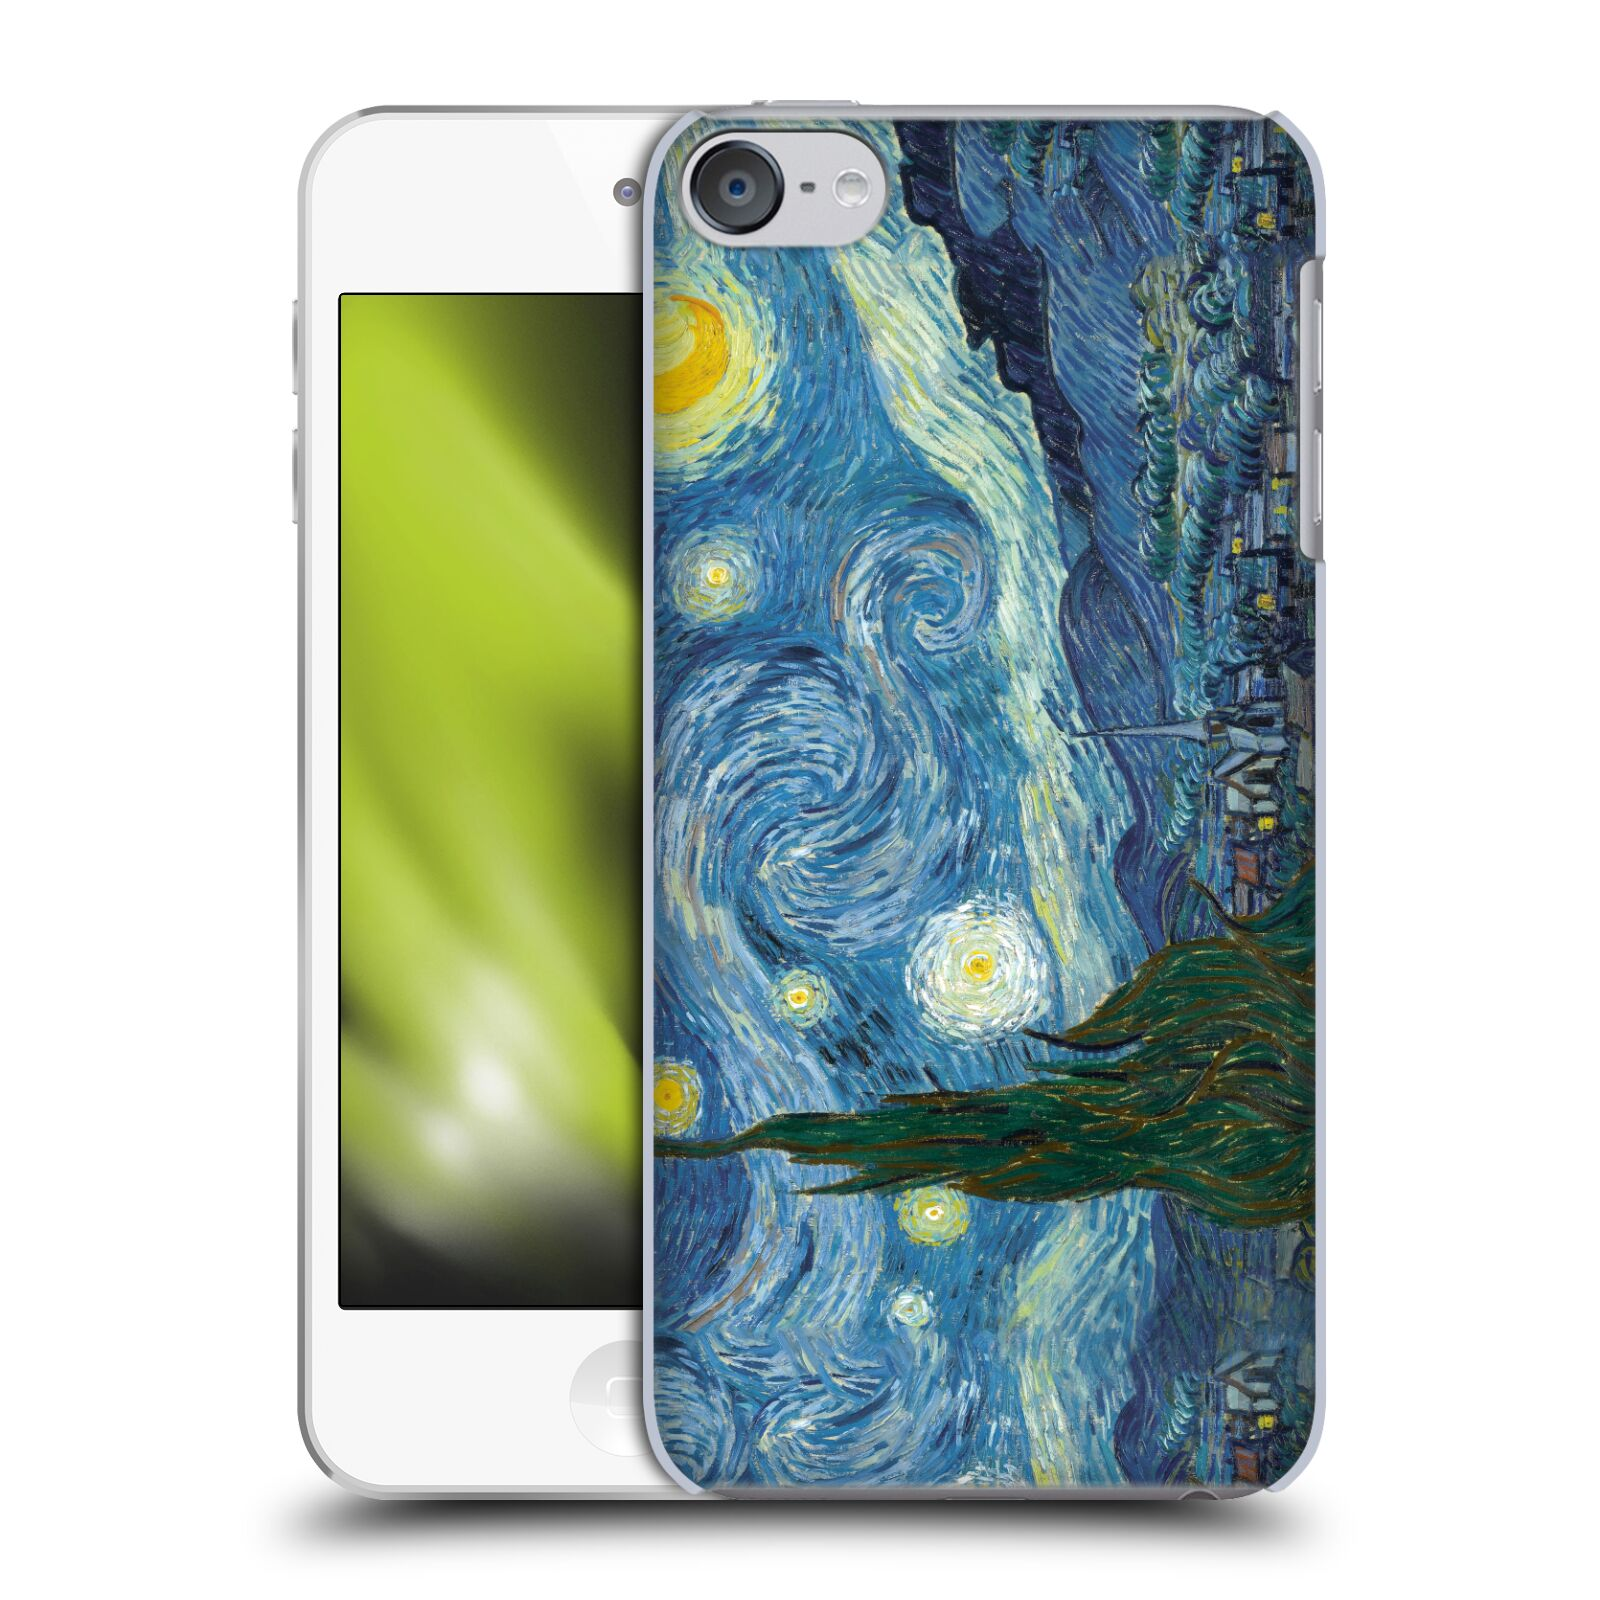 OFFICIAL-MASTERS-COLLECTION-PAINTINGS-1-HARD-BACK-CASE-FOR-APPLE-iPOD-TOUCH-MP3